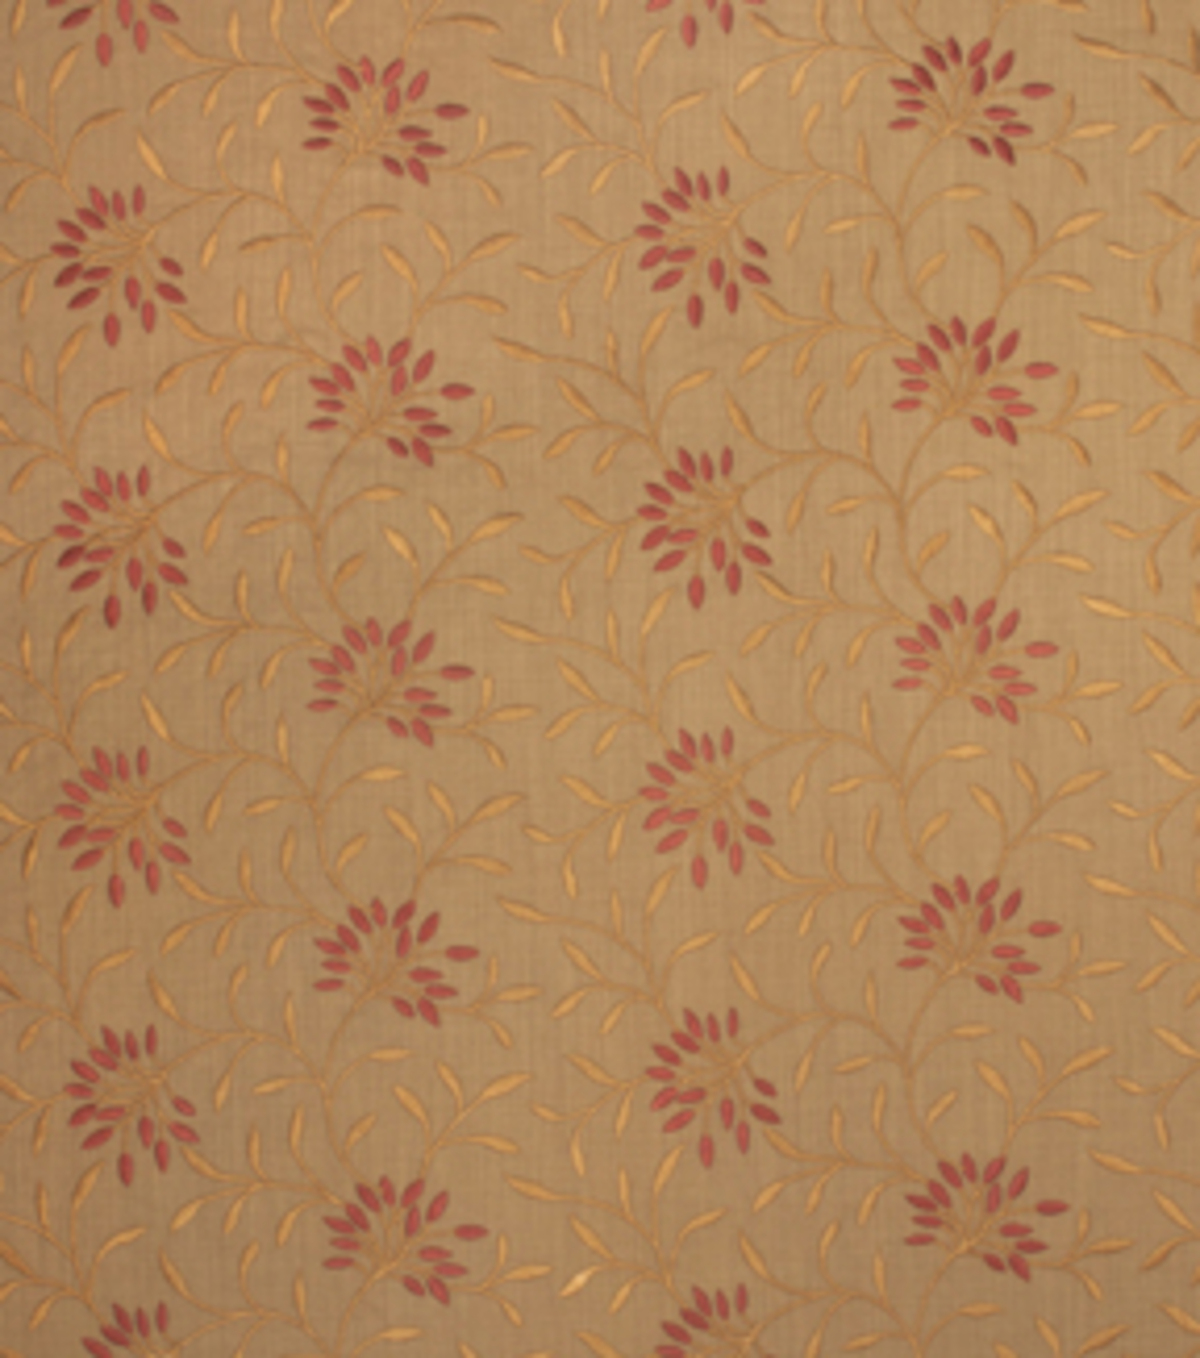 Home Decor 8\u0022x8\u0022 Fabric Swatch-Print Fabric Eaton Square Greenville Sienna